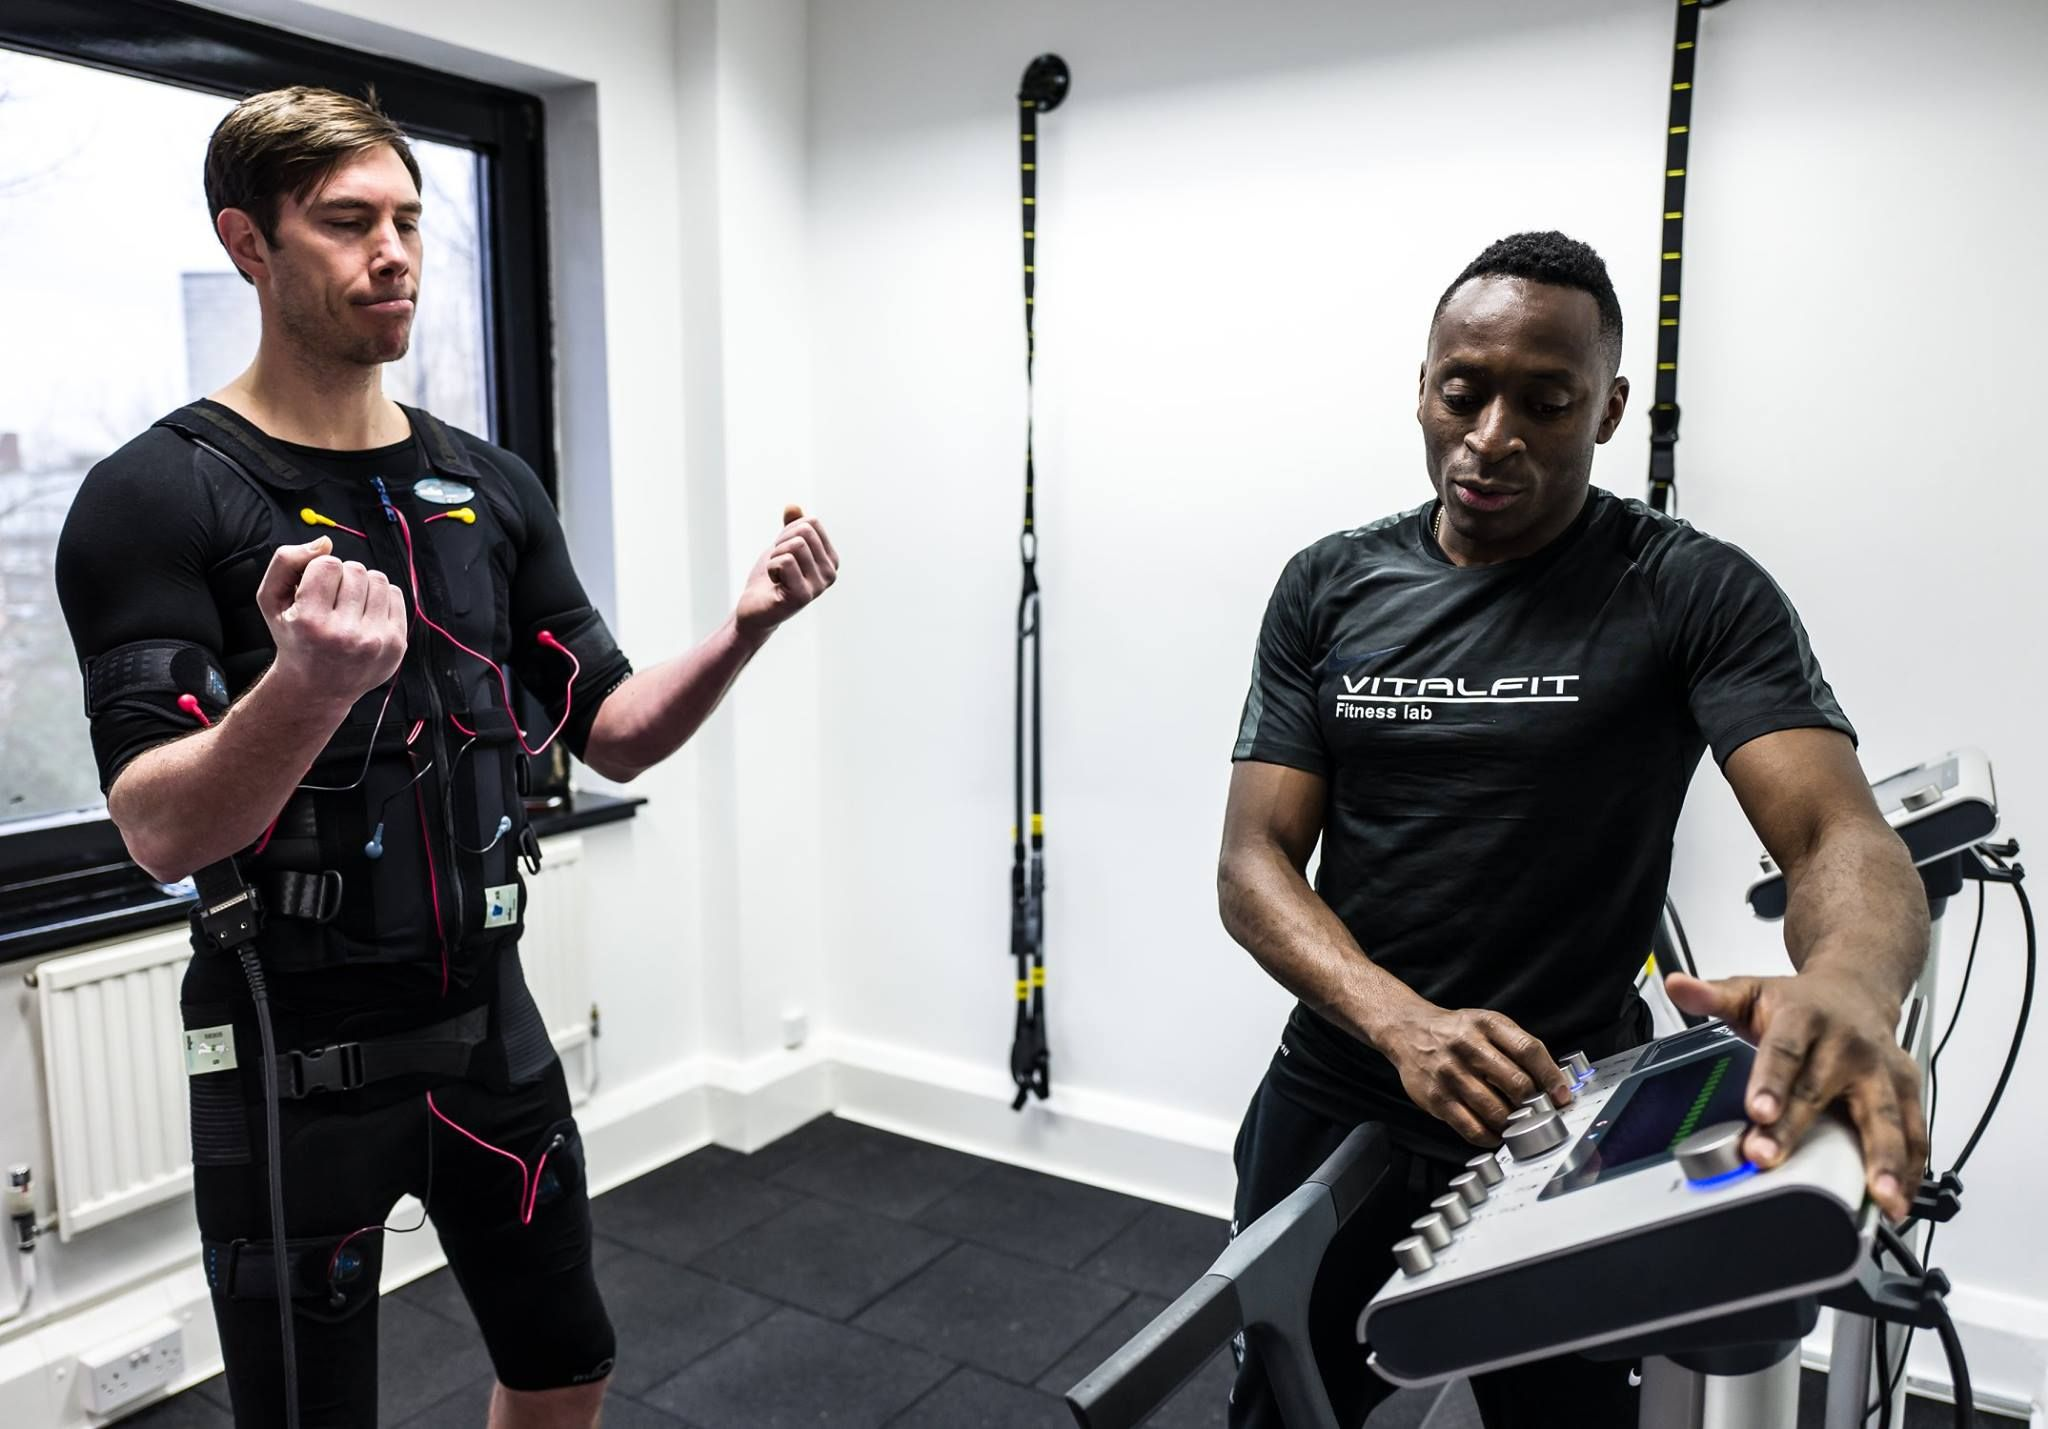 New Ems Studio In London Uk Vitalfit Fitness Lab Offers The Newest Technology With Miha Bodytec Unit 49 Skylines Business Village Train The Unit London Uk